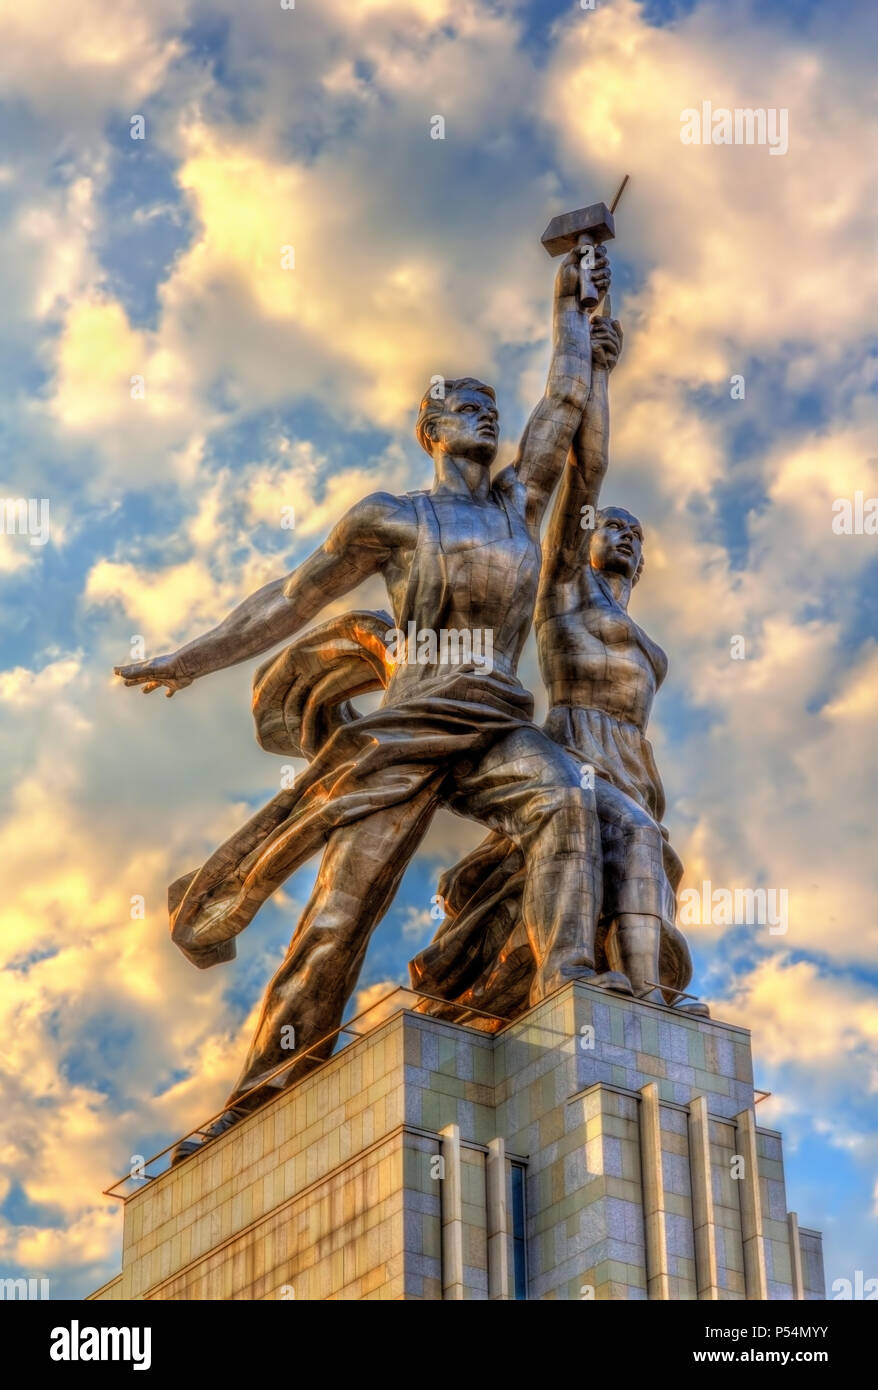 Worker and Kolkhoz Woman, a famous soviet monument in Moscow - Stock Image